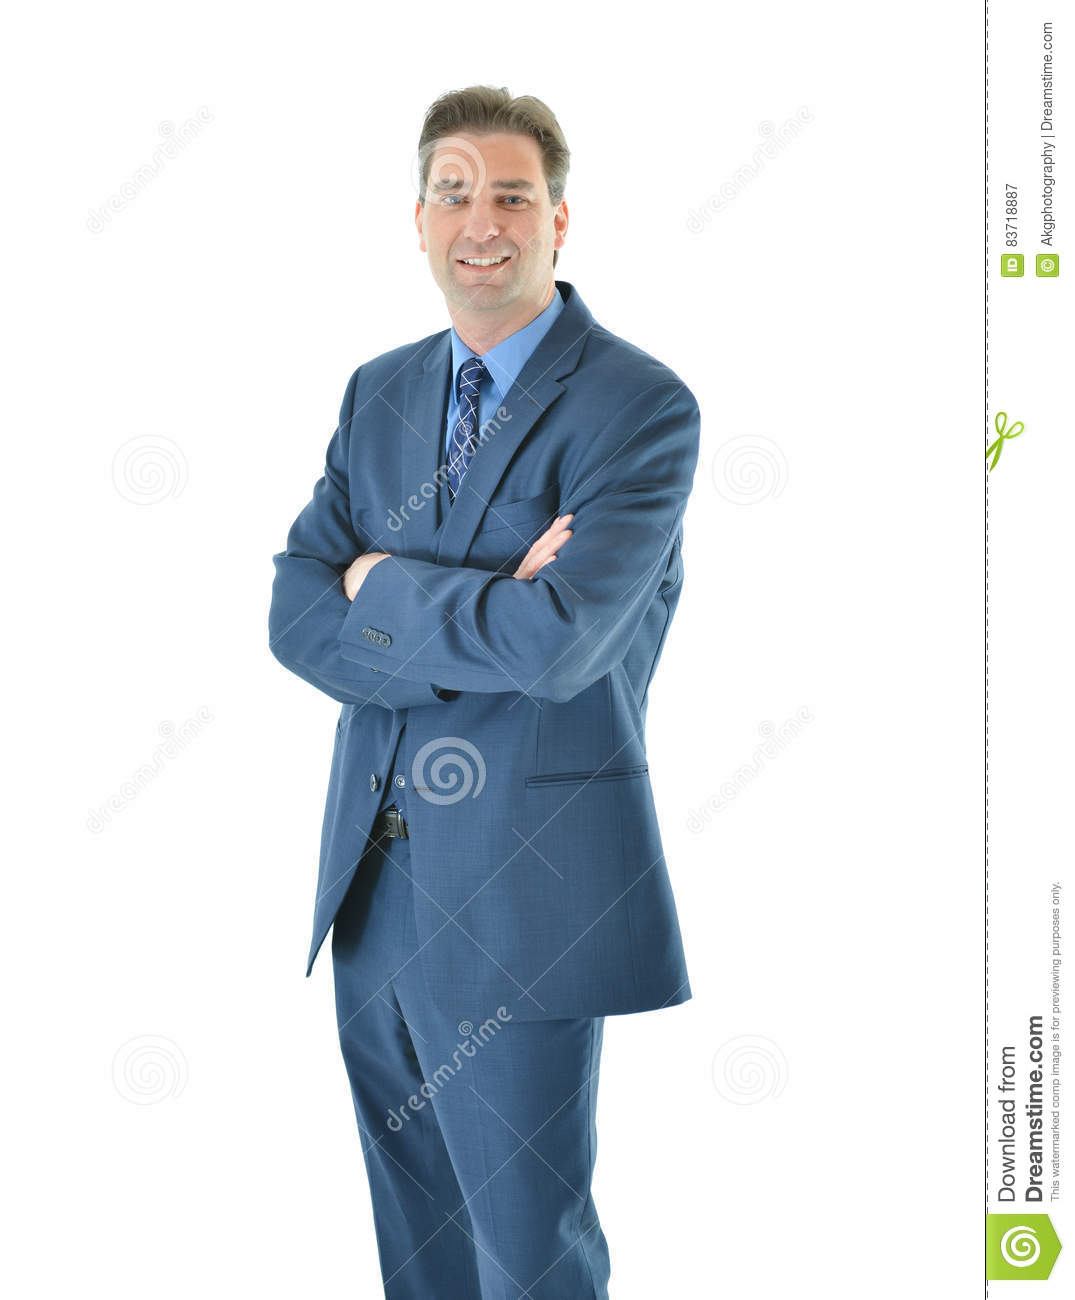 Business Man Standing With A Smile Stock Photo